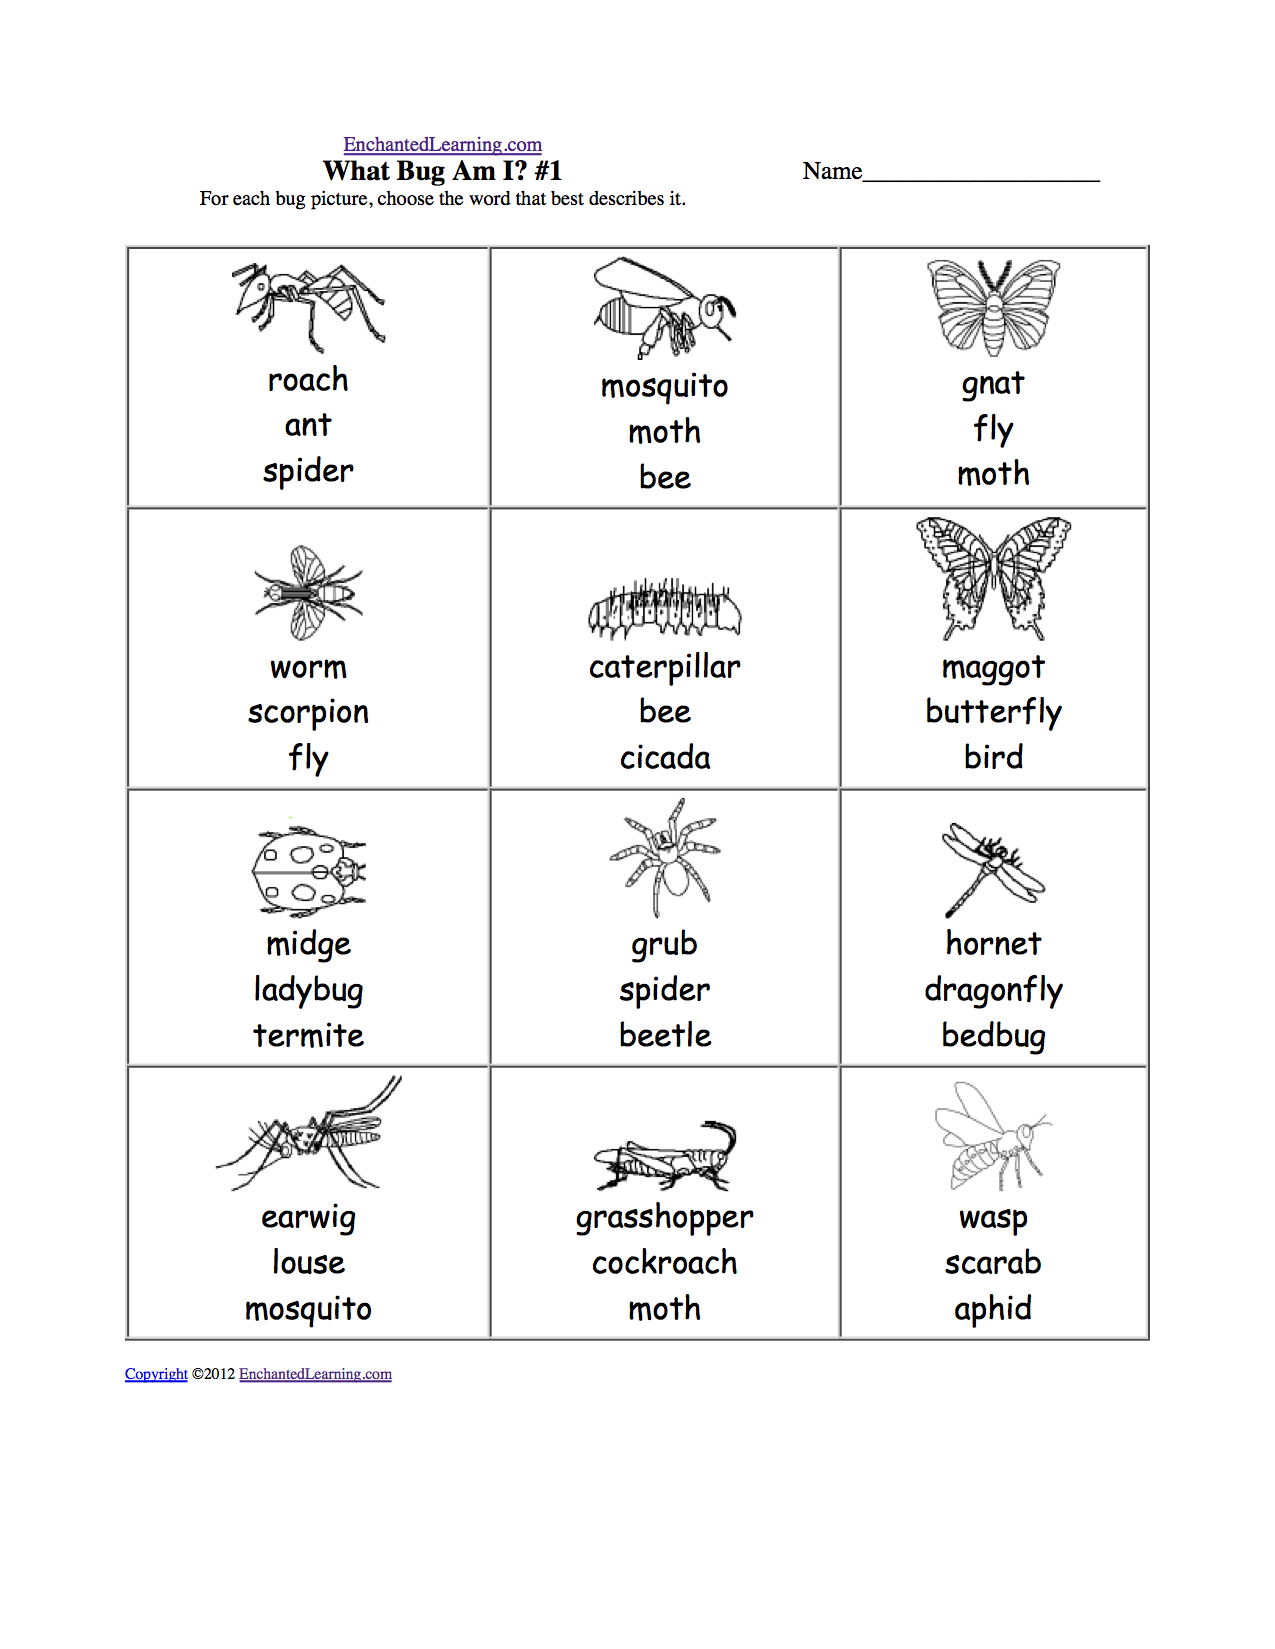 Aldiablosus  Scenic What Am I Worksheet Printouts  Enchantedlearningcom With Goodlooking Worksheets For Mean Median Mode And Range Besides Worksheet Of Maths For Class  Furthermore Class  Worksheets With Agreeable Emotion Faces Worksheet Also Rhyming Pairs Worksheet In Addition Simple Machines Levers Worksheet And Denotation Connotation Worksheets As Well As Bill Nye Rocks Worksheet Additionally Positional Language Worksheets From Enchantedlearningcom With Aldiablosus  Goodlooking What Am I Worksheet Printouts  Enchantedlearningcom With Agreeable Worksheets For Mean Median Mode And Range Besides Worksheet Of Maths For Class  Furthermore Class  Worksheets And Scenic Emotion Faces Worksheet Also Rhyming Pairs Worksheet In Addition Simple Machines Levers Worksheet From Enchantedlearningcom